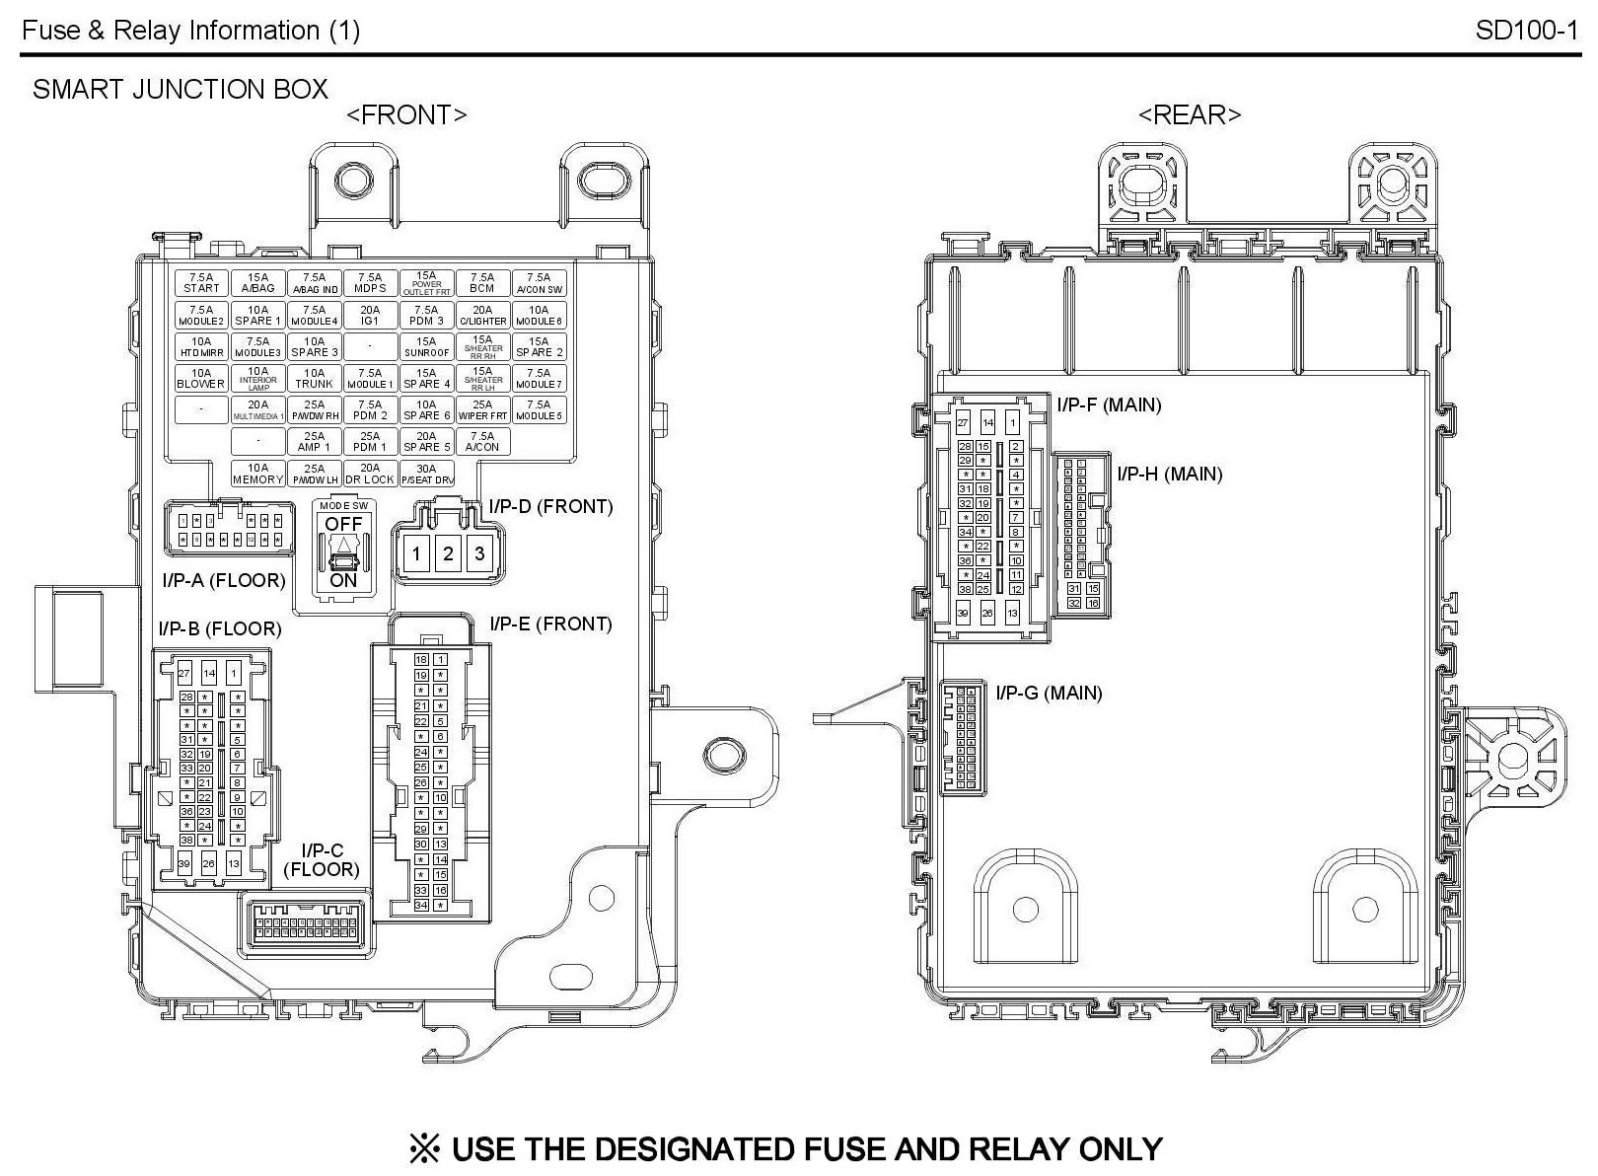 2002 bmw 330xi fuse box diagram wiring library. Black Bedroom Furniture Sets. Home Design Ideas